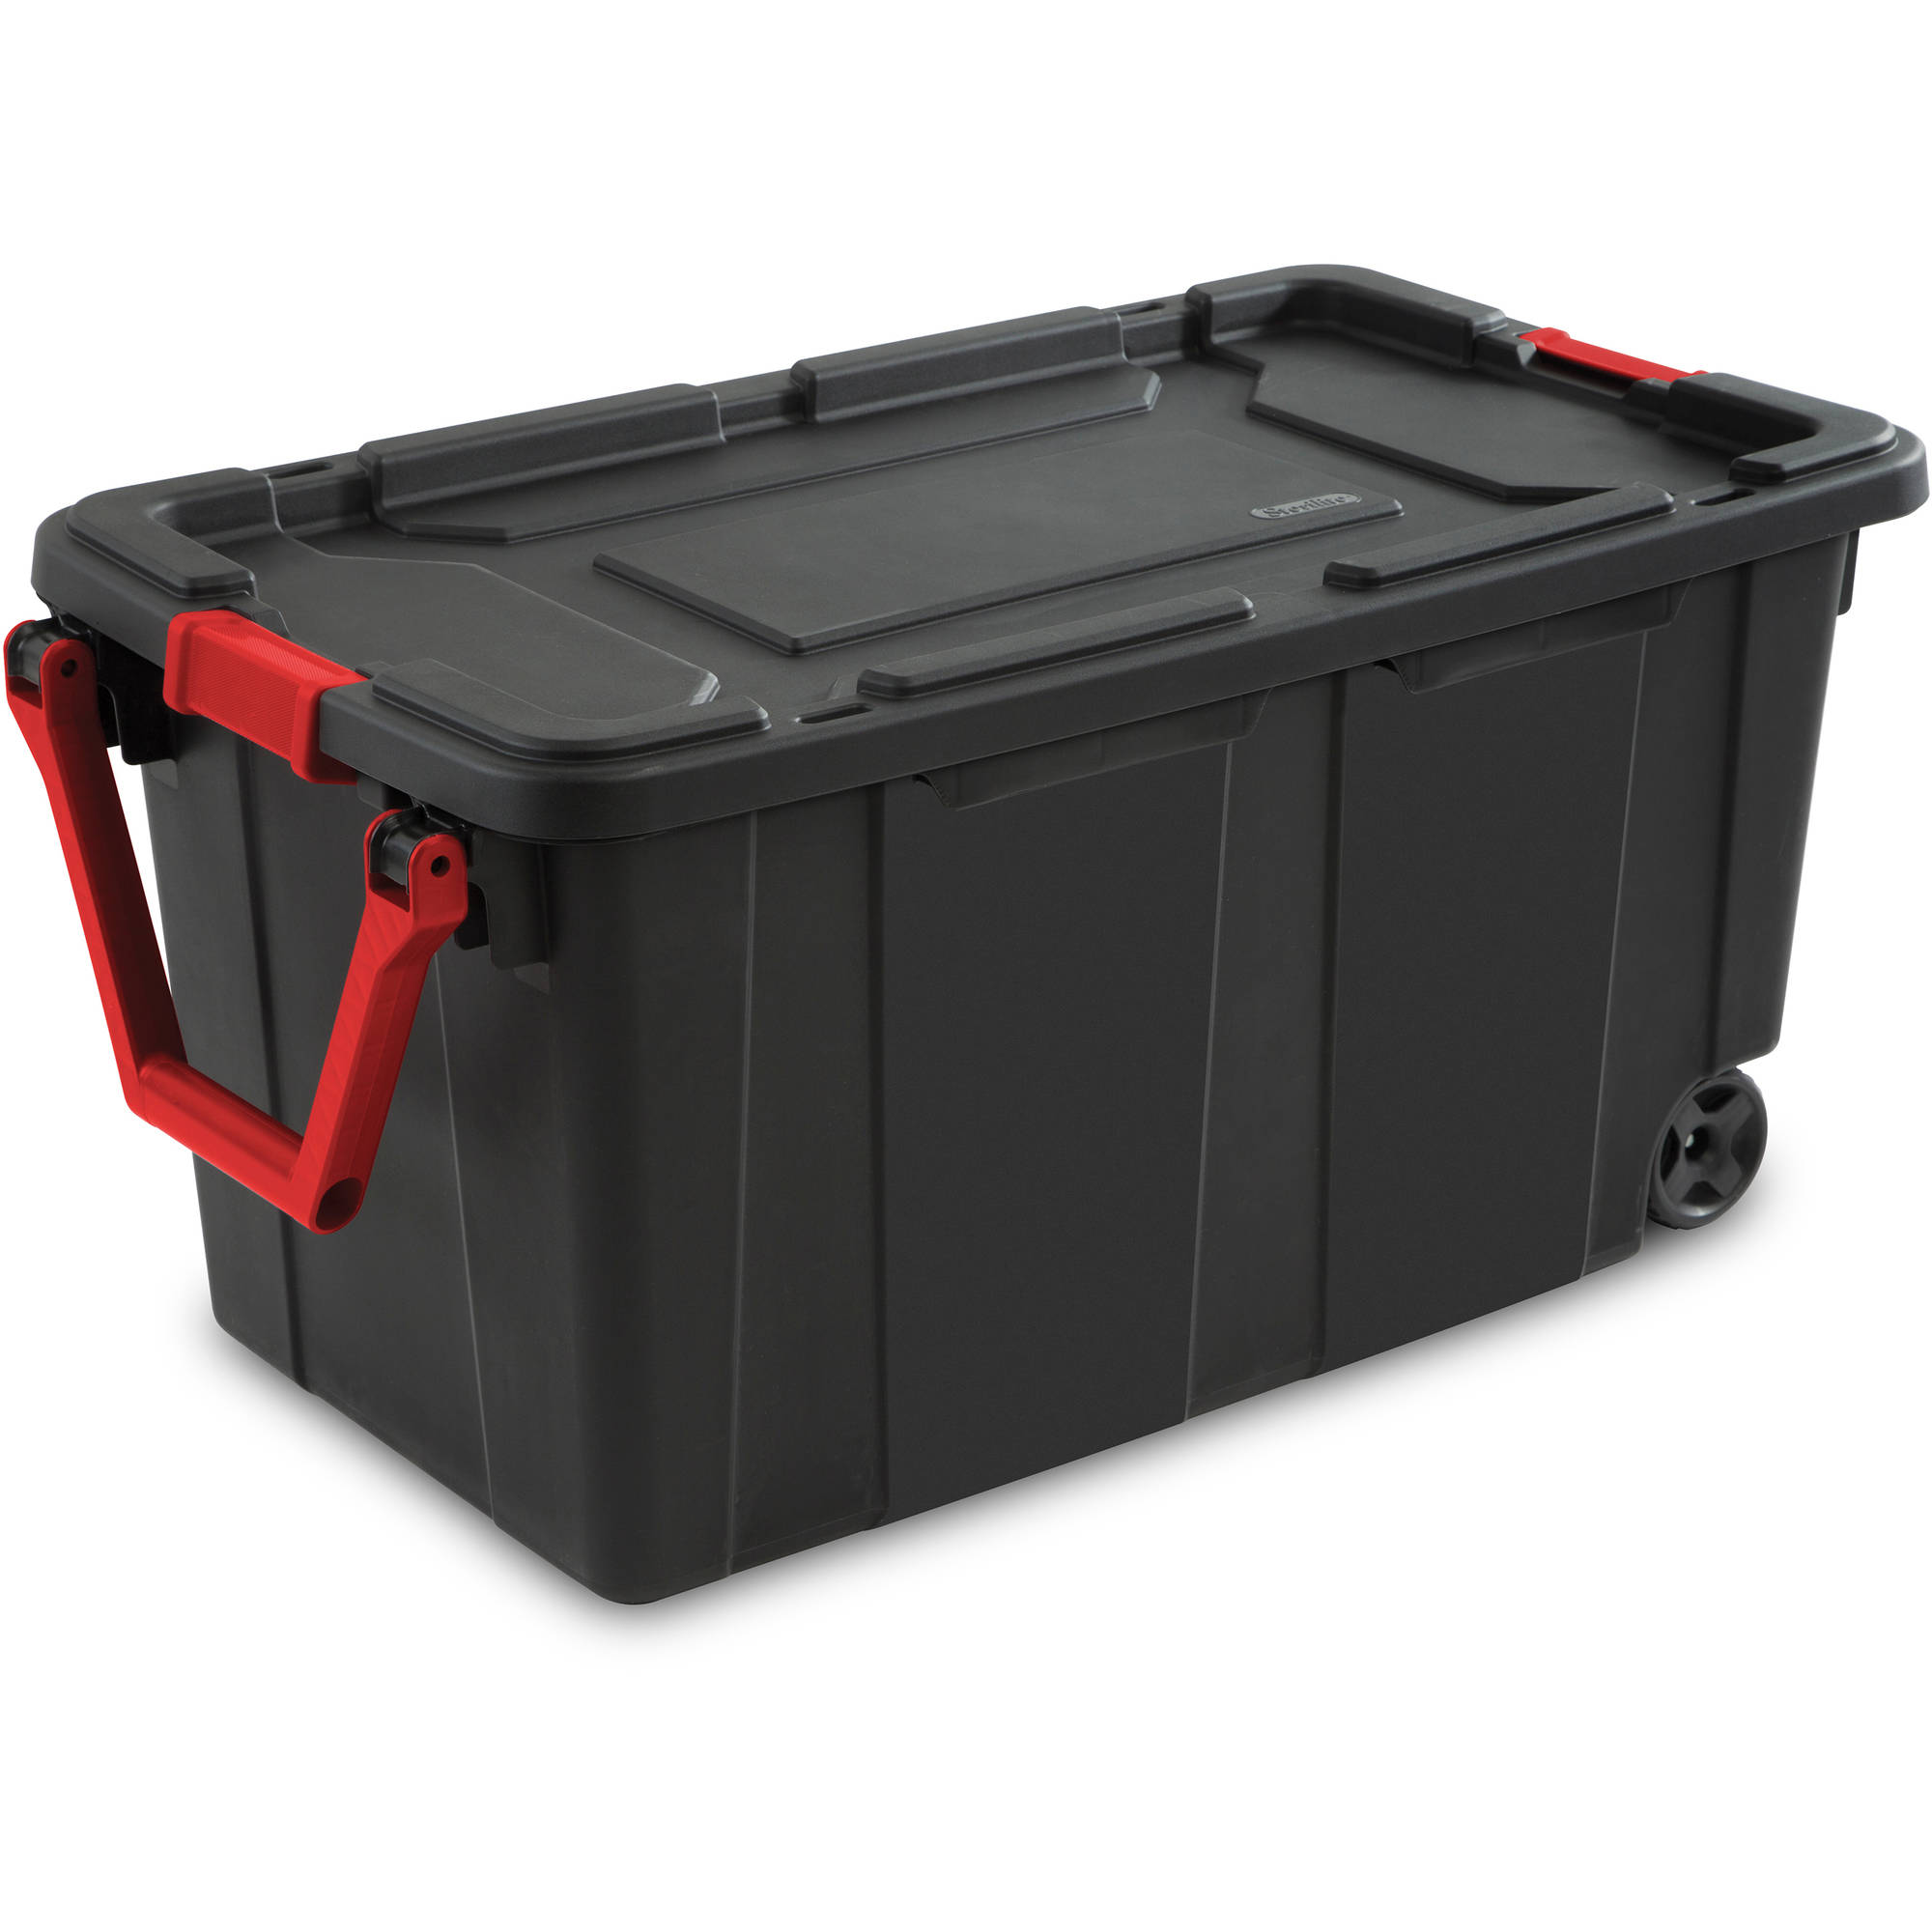 Sterilite 40-Gallon Wheeled Industrial Tote, Black